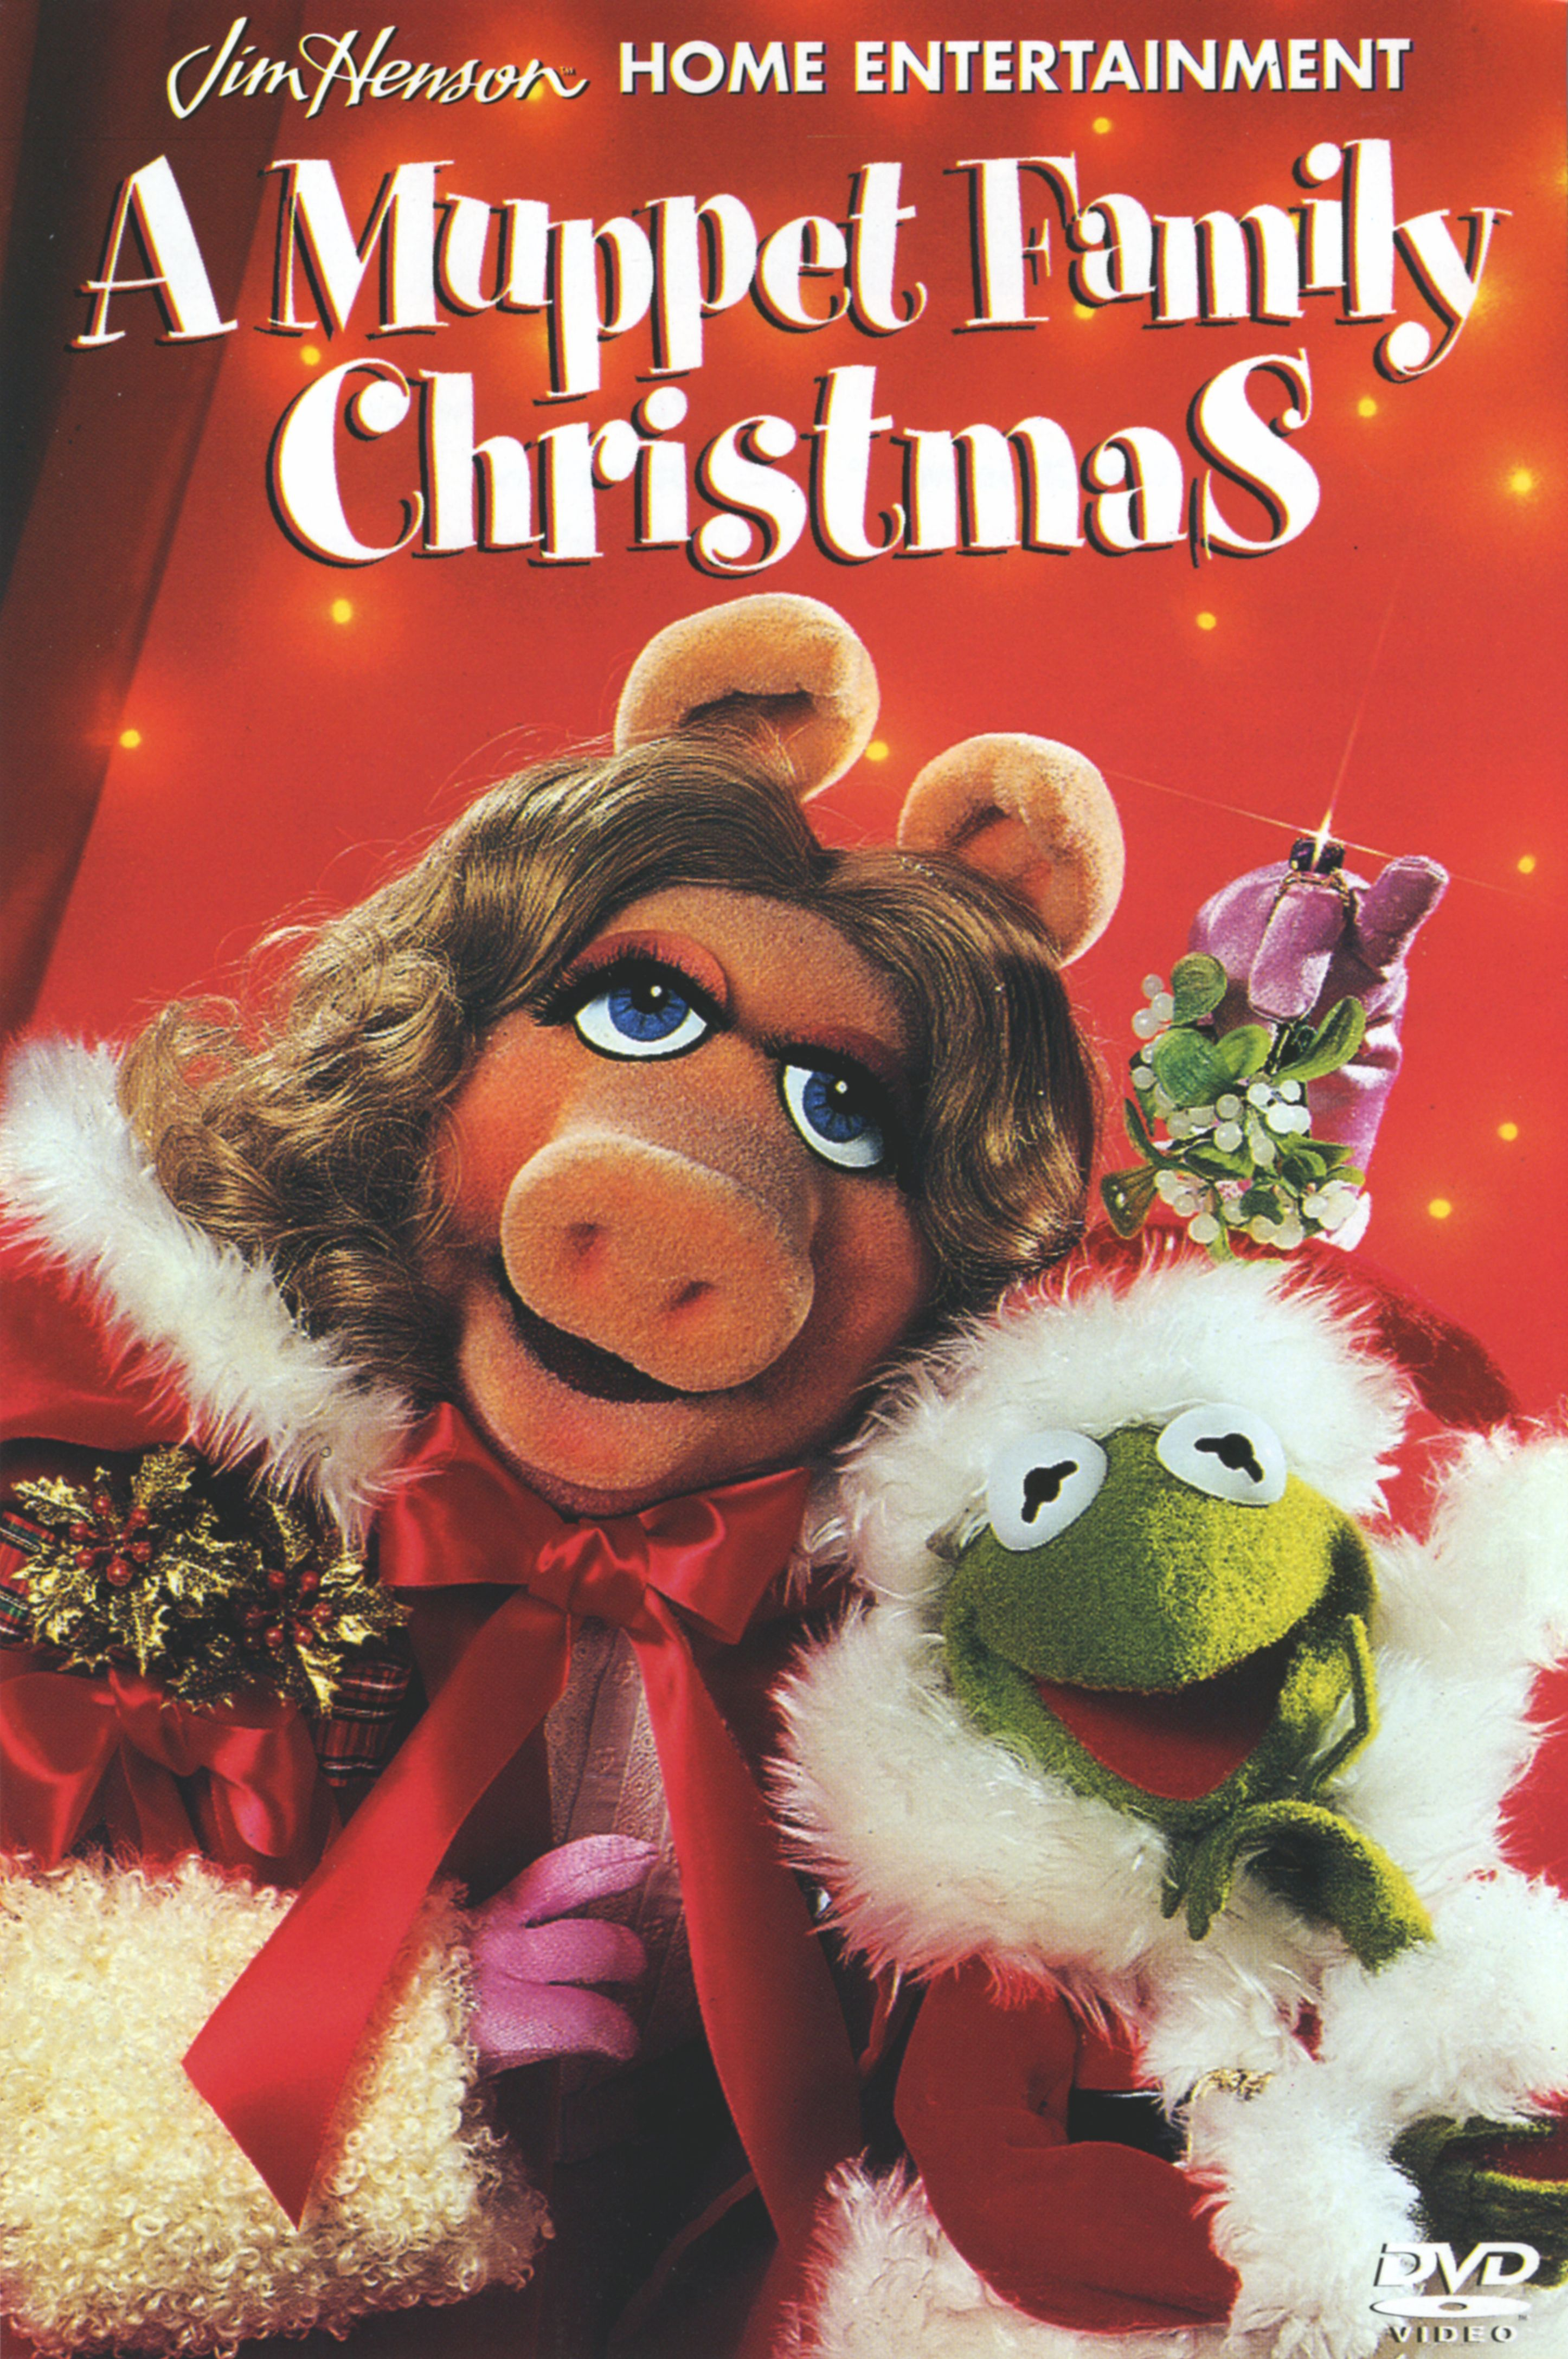 muppet family christmas - Muppets Family Christmas